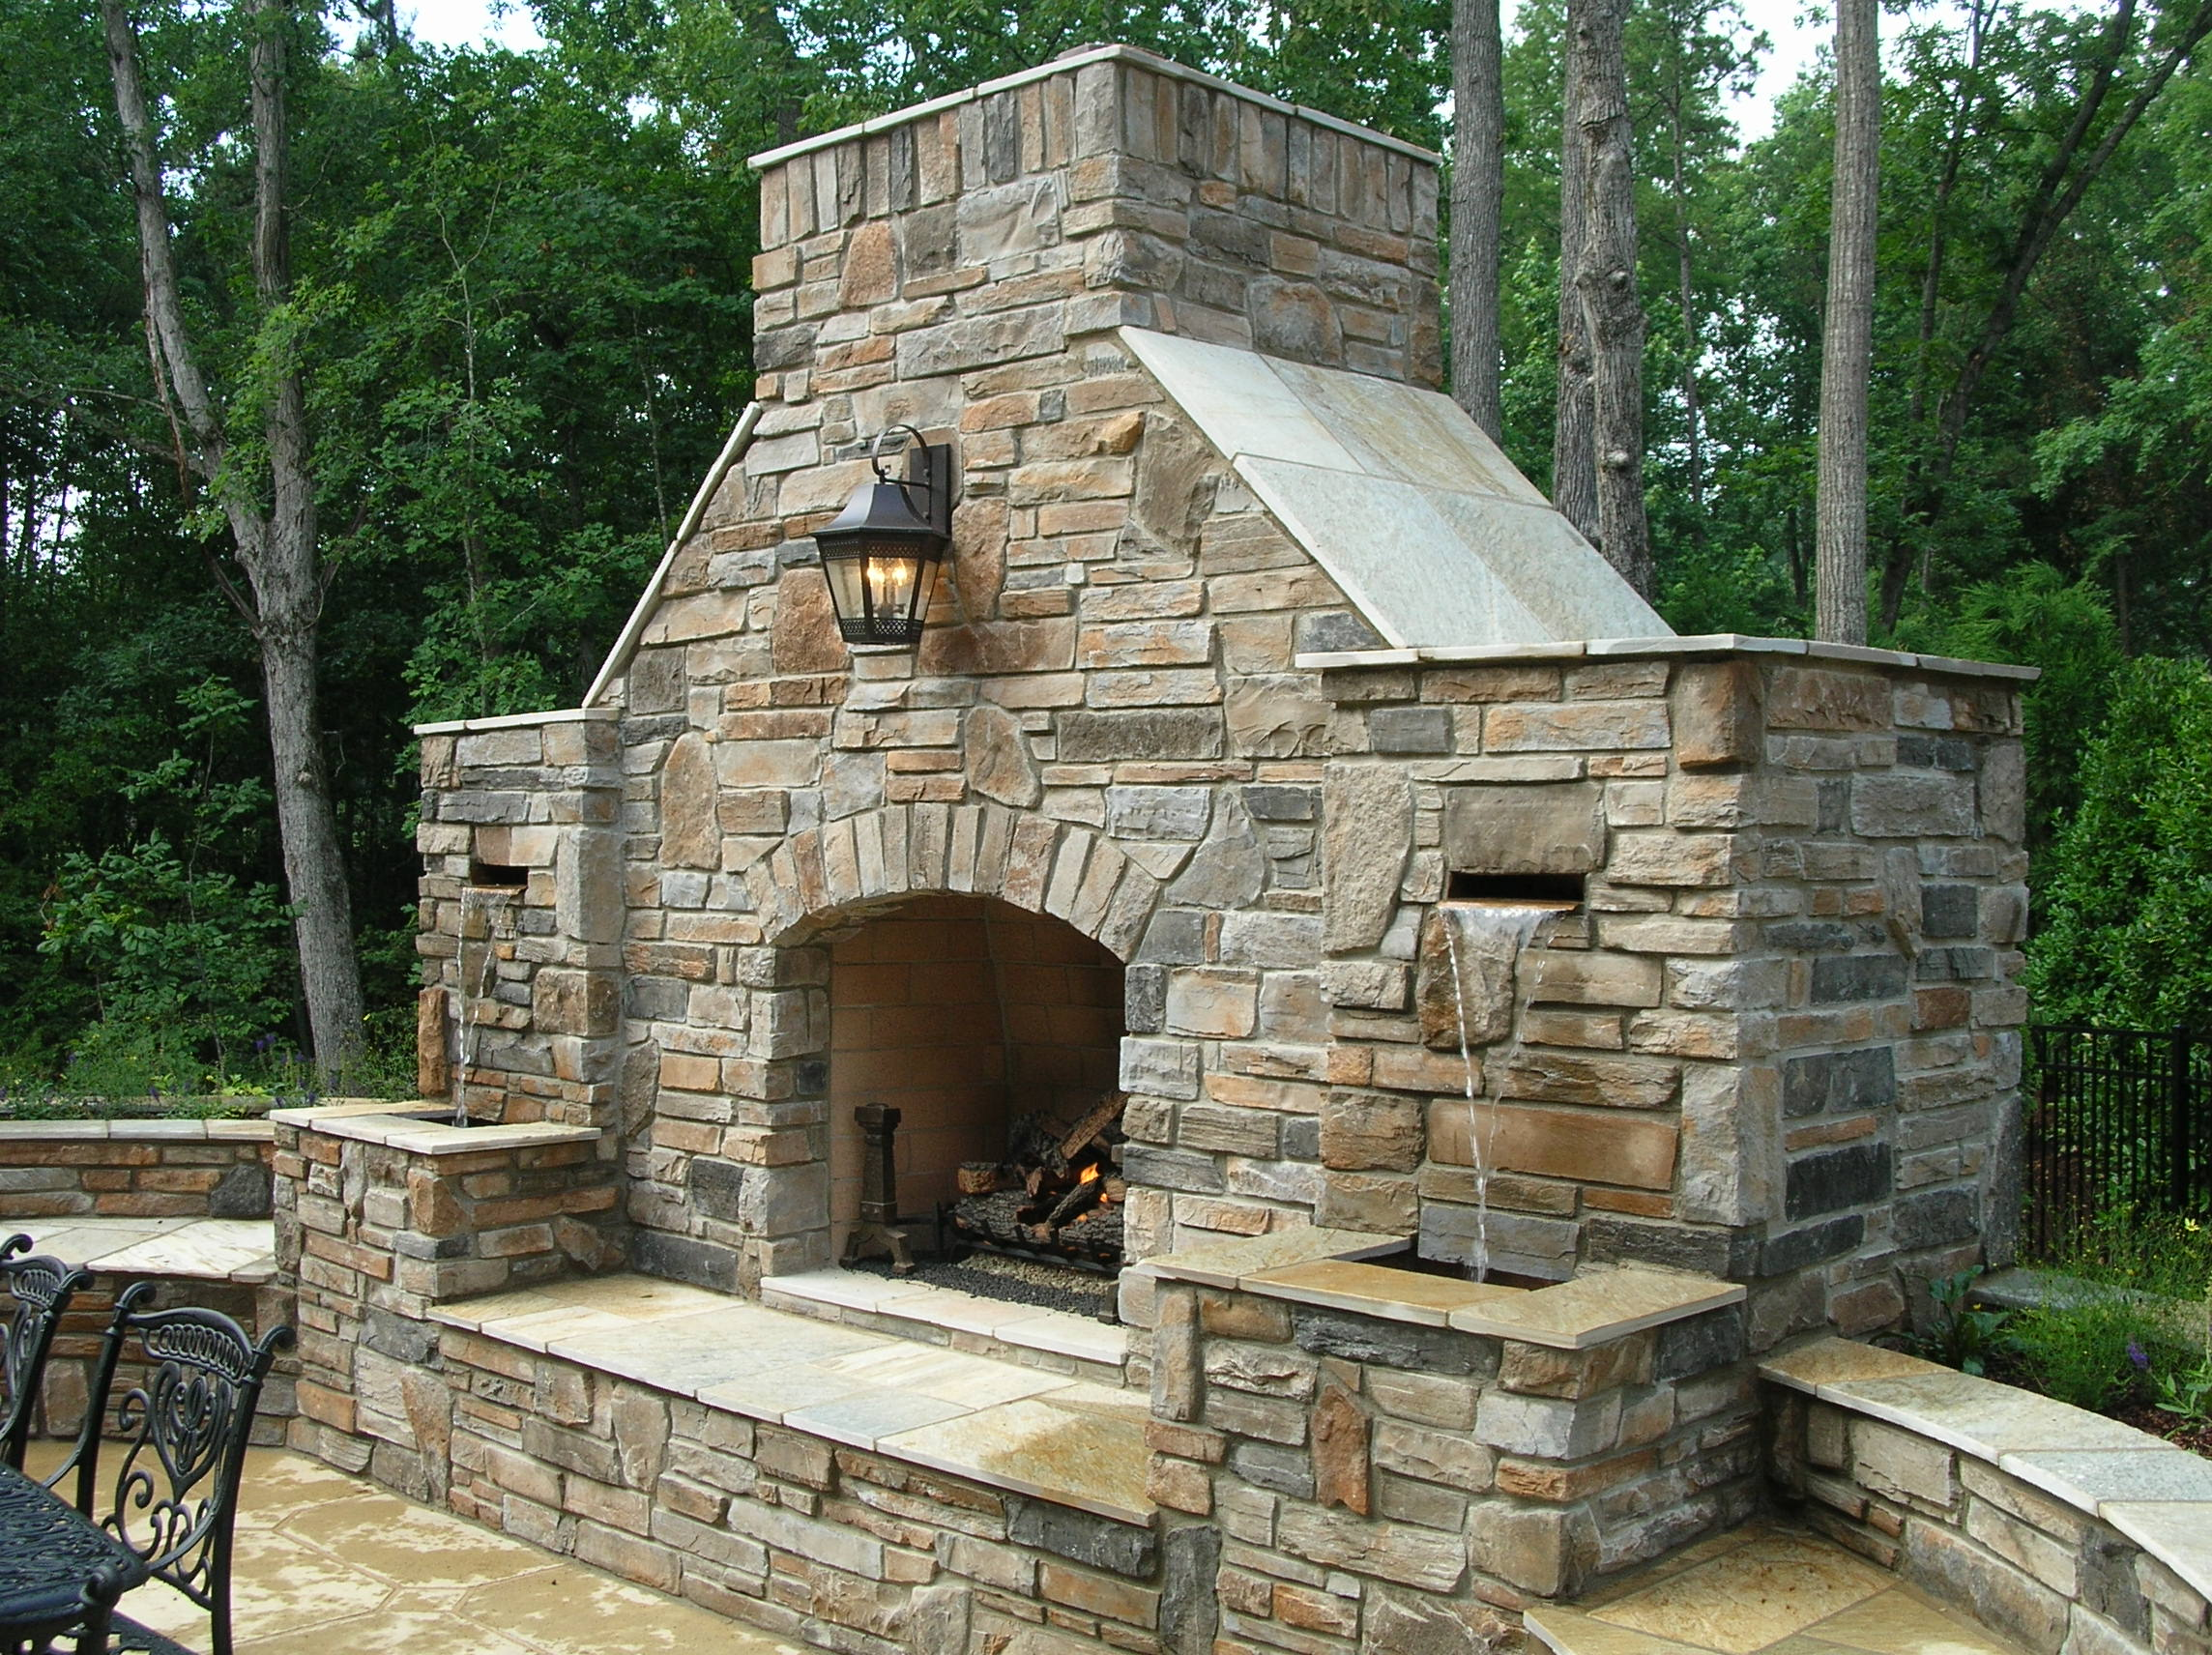 Outdoor Fireplace Install - Adanco Services